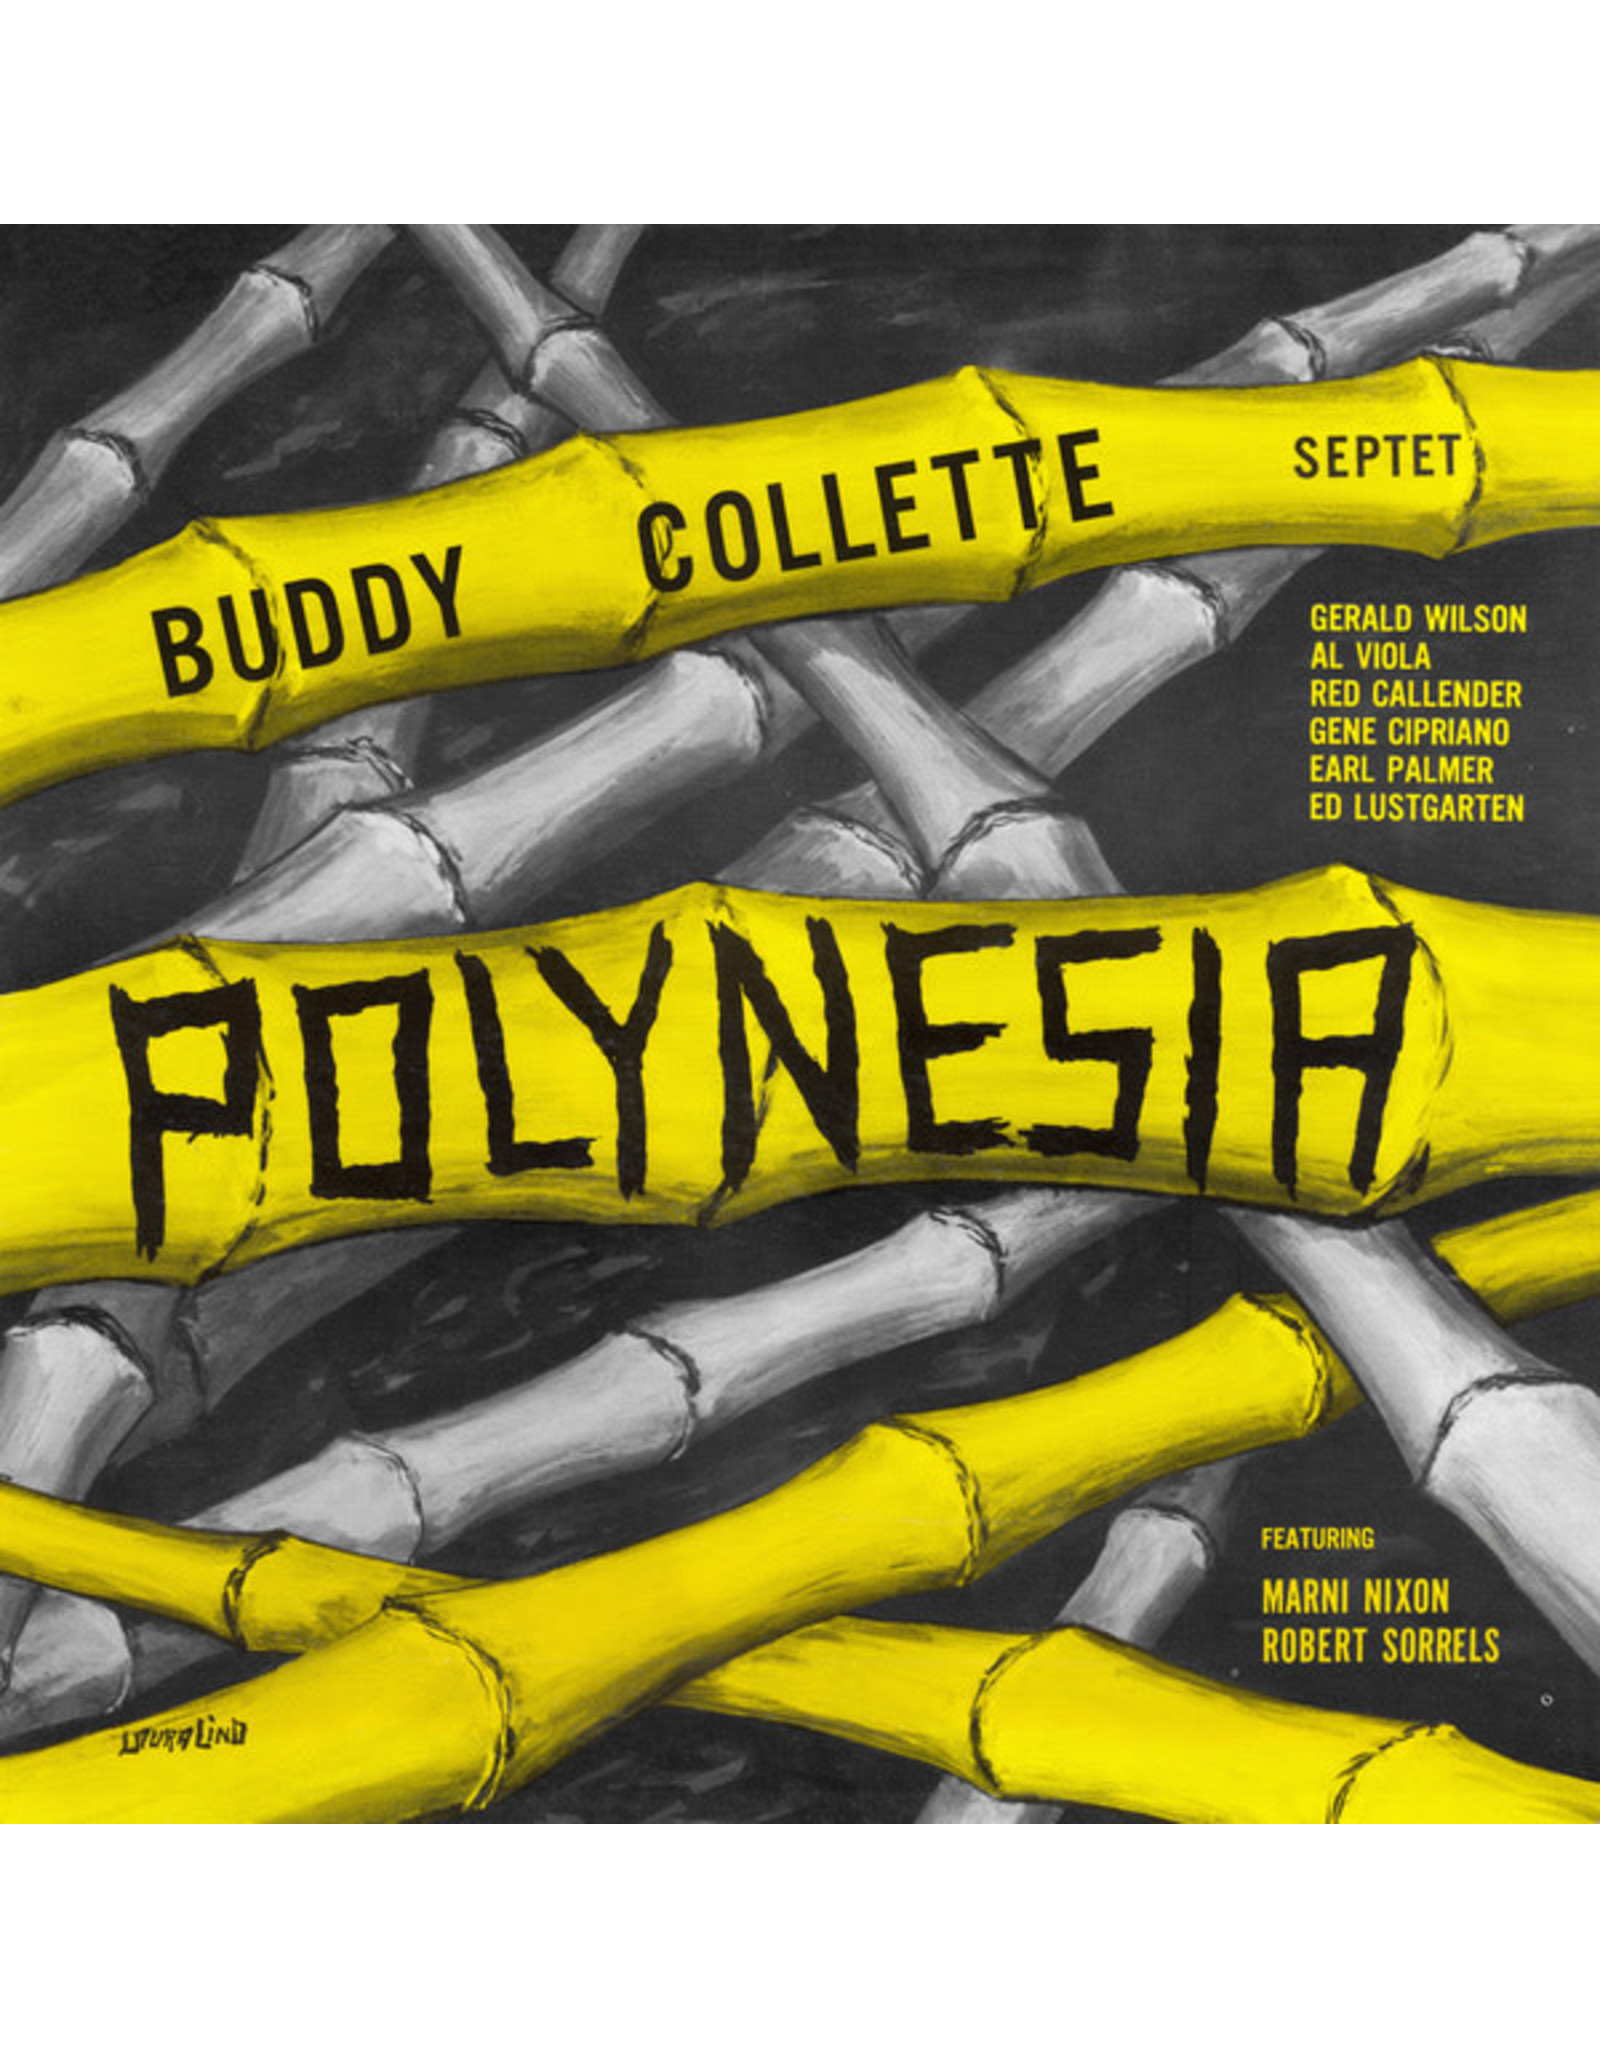 New Vinyl Buddy Collette Septet - Polynesia LP